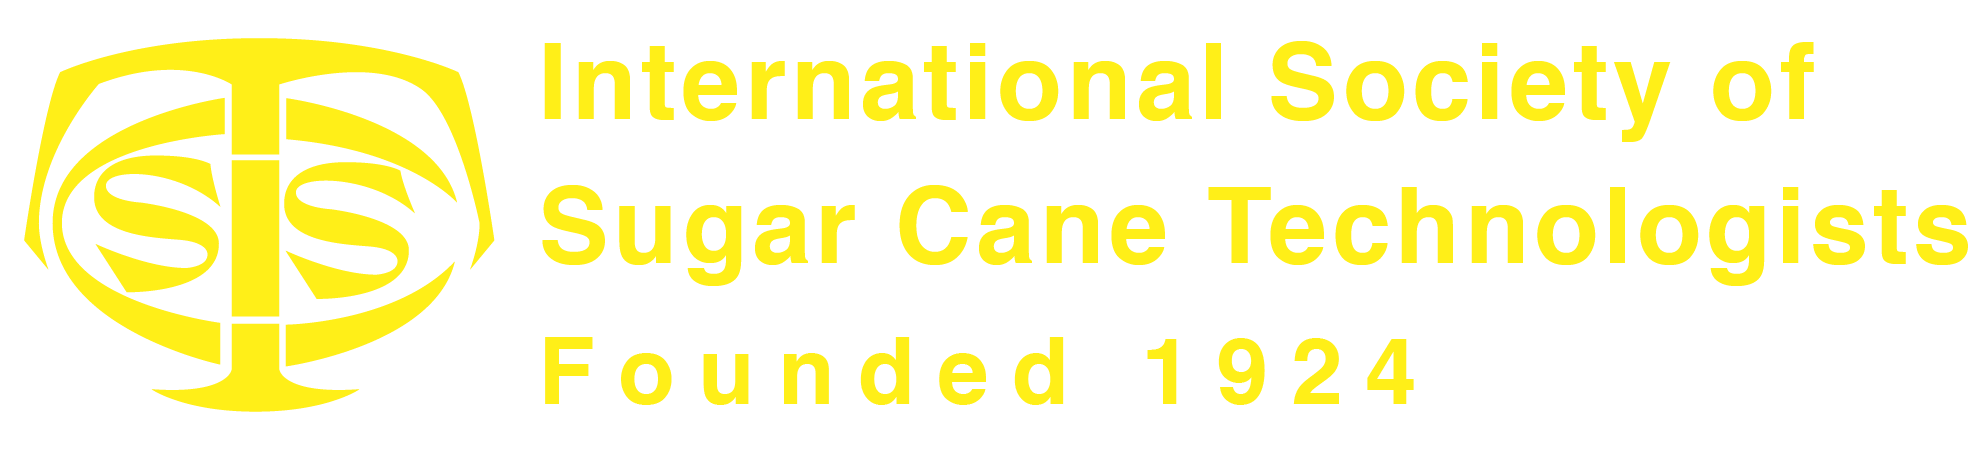 International Society of Sugar Cane Technologists